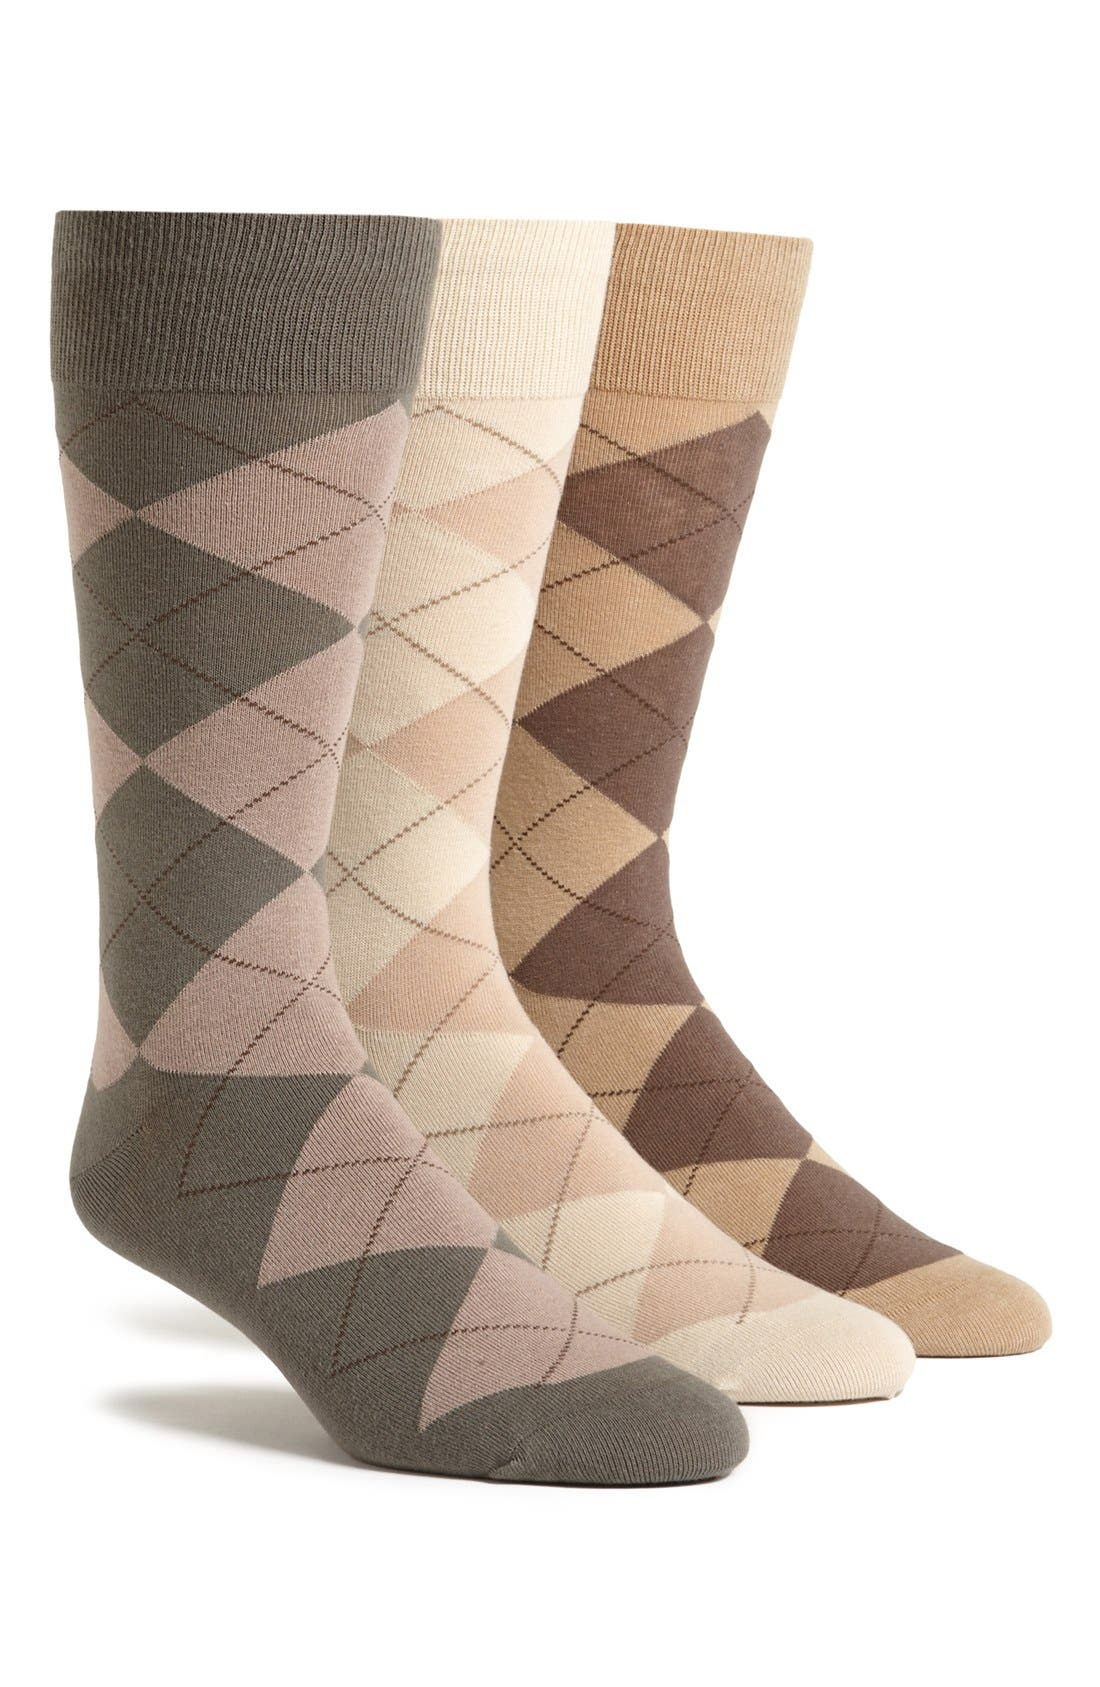 3-Pack Argyle Socks,                         Main,                         color, LT COFFEE/ BONE WHITE/ TOBACCO